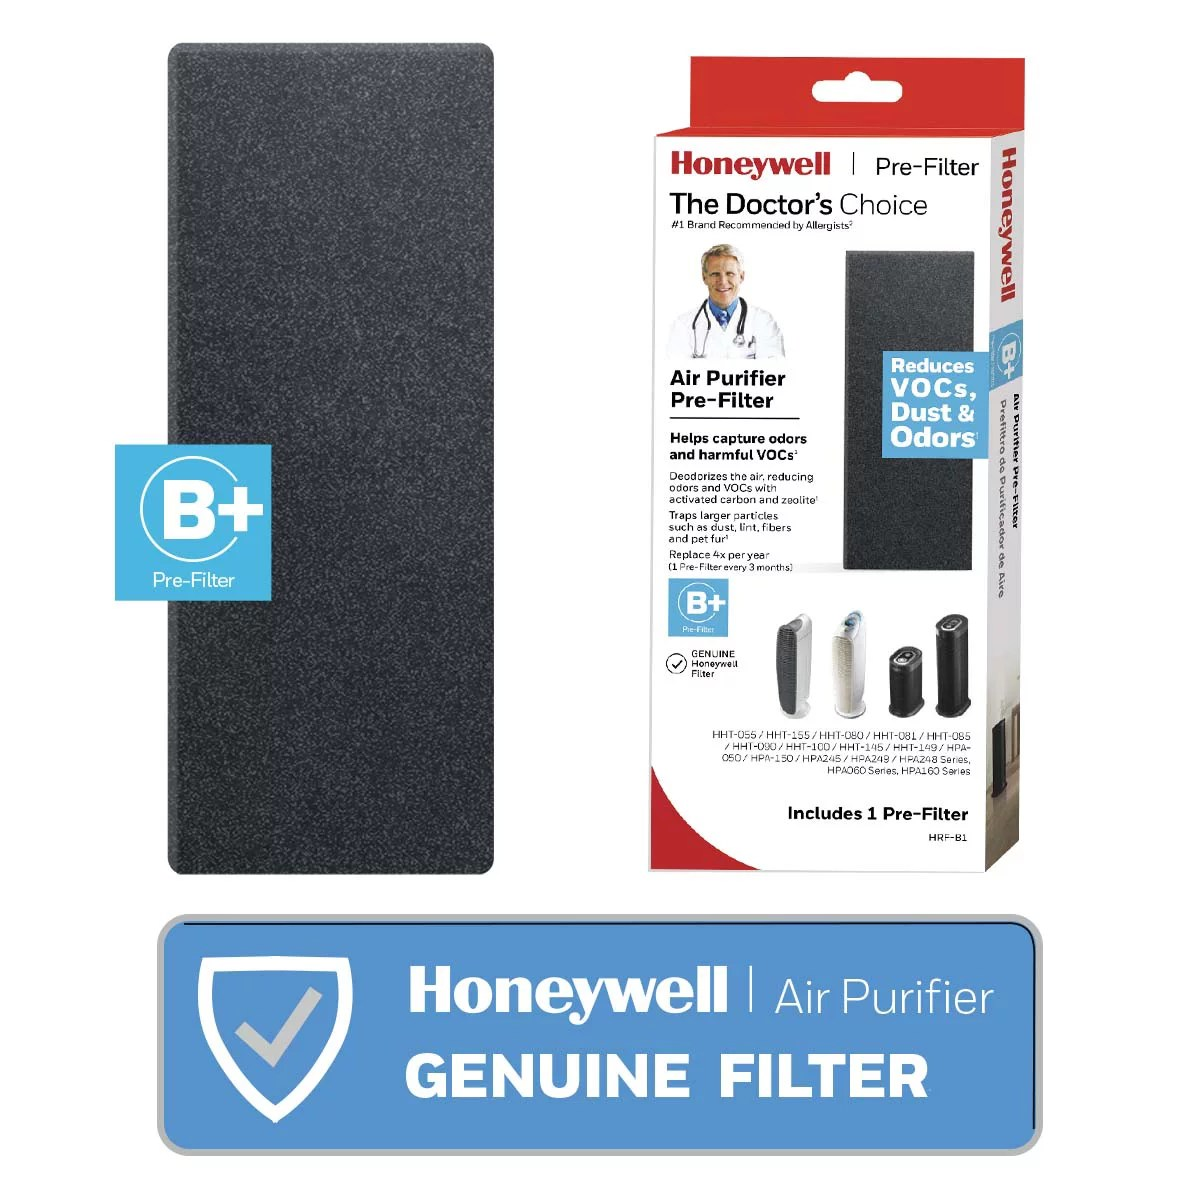 Honeywell Premium Household Gas & Odor Reducing Pre-Filter B, 1 Pack